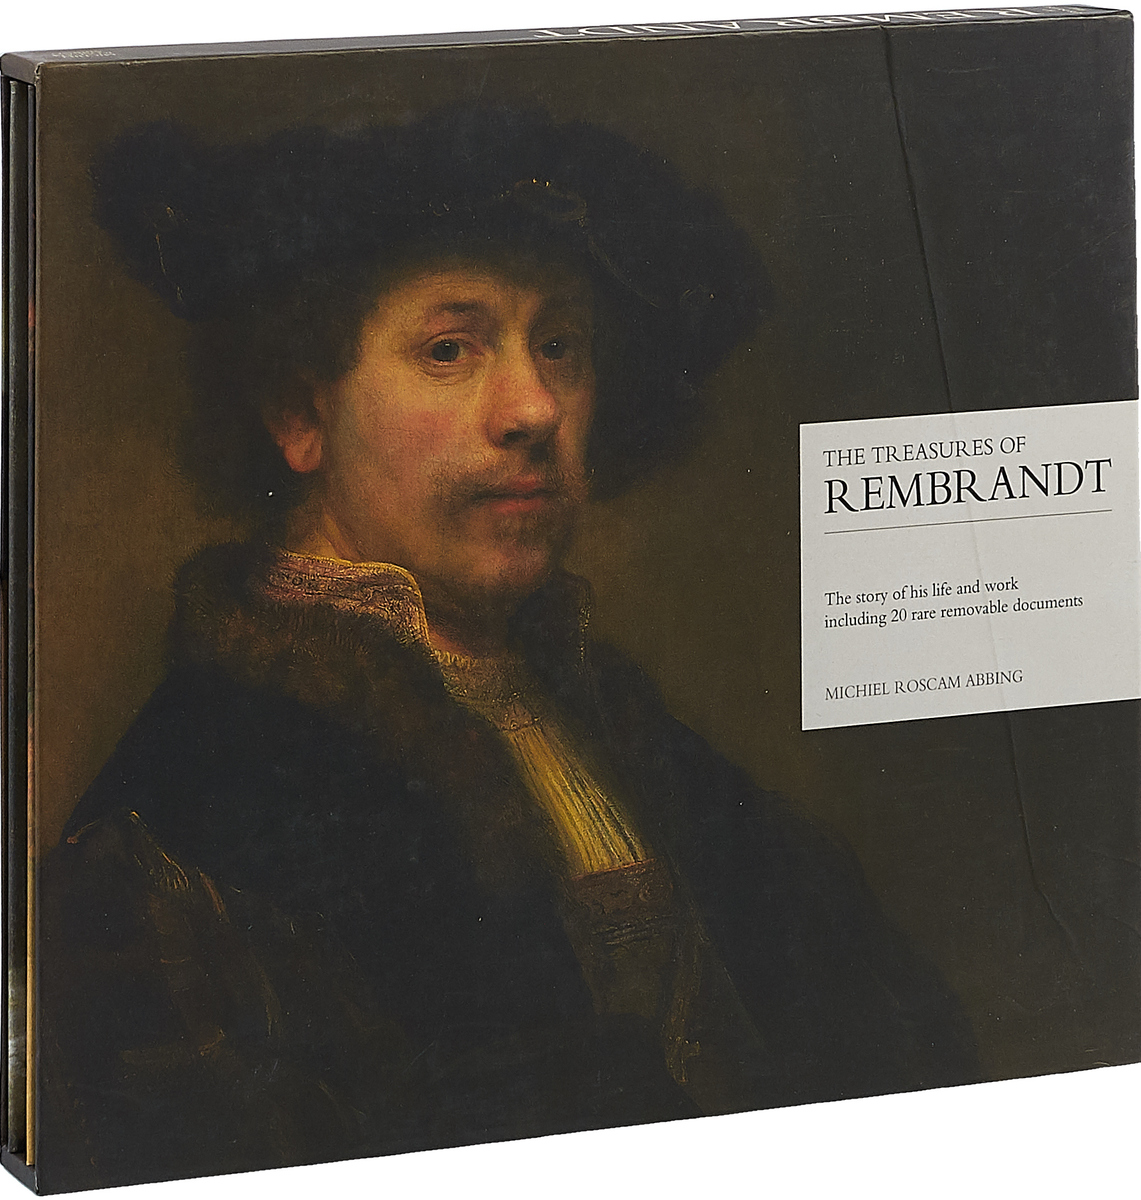 The Treasures of Rembrandt rembrandt and the inspiration of india